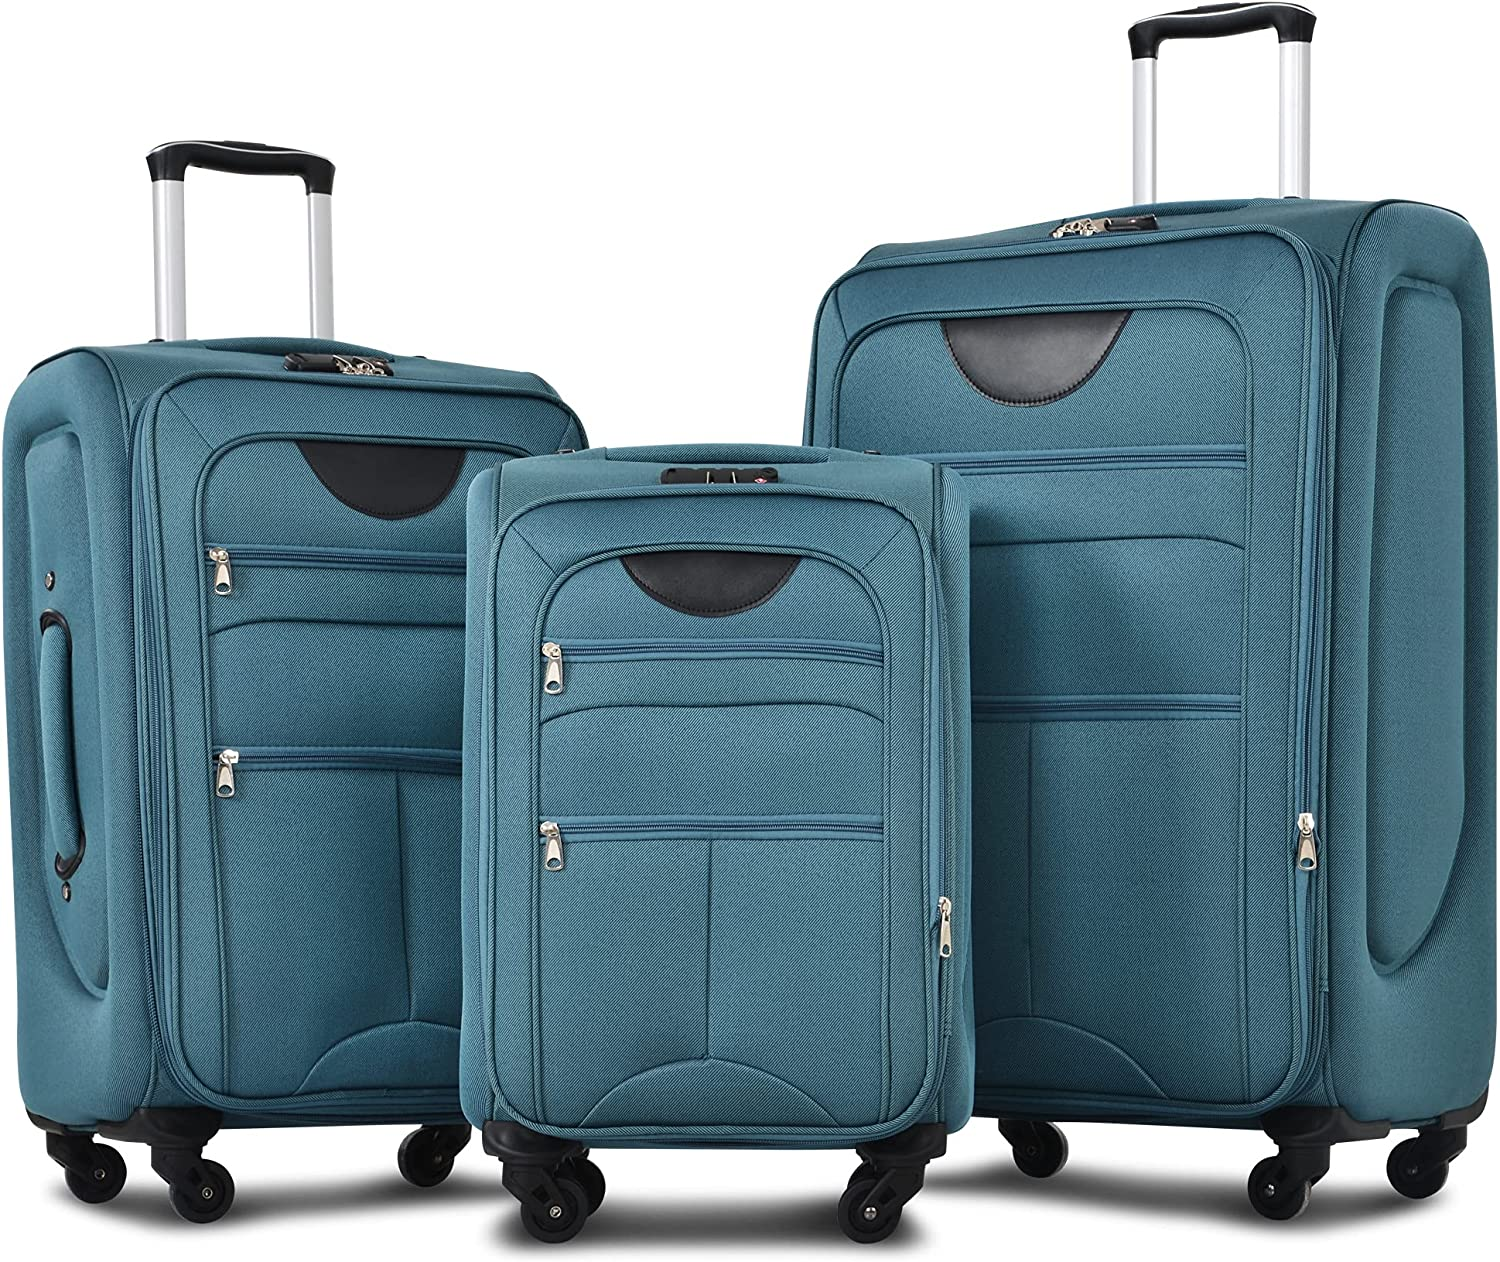 Merax Softside Expandable Luggage Max 49% OFF Softshell Lightweight Sets 3 Max 77% OFF